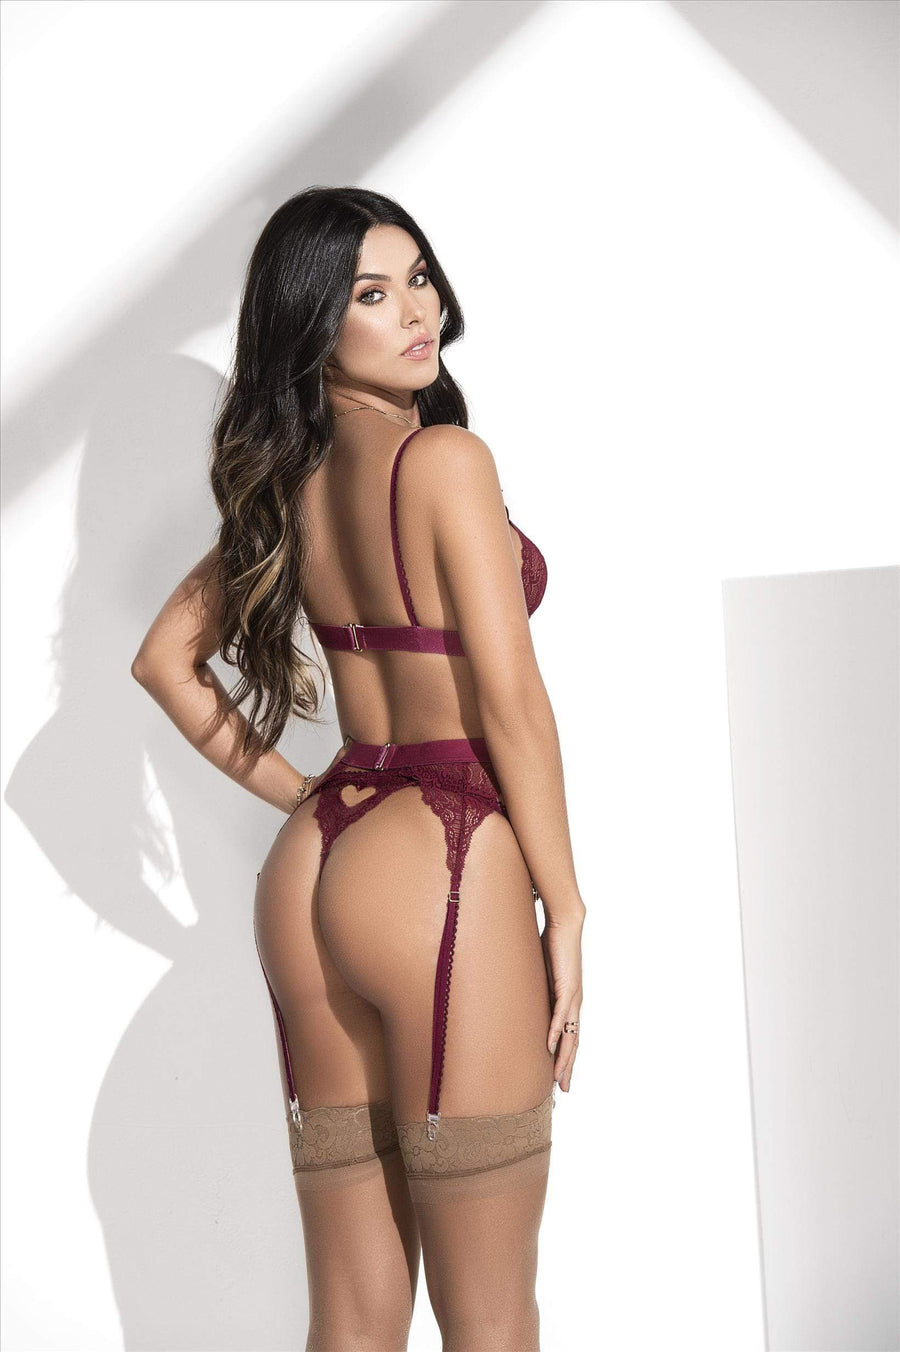 mapale Burgundy / S/M Burgundy Lace Bra, Thong, & Garter 3 Pc. Set (Many colors available) SHC-8221-BURGUNDY-S/M-MA Burgundy Lingerie Lace Set Bra Thong & Garter MAPALE 8221 | SHOP NOW | Apparel & Accessories > Clothing > Underwear & Socks > Lingerie